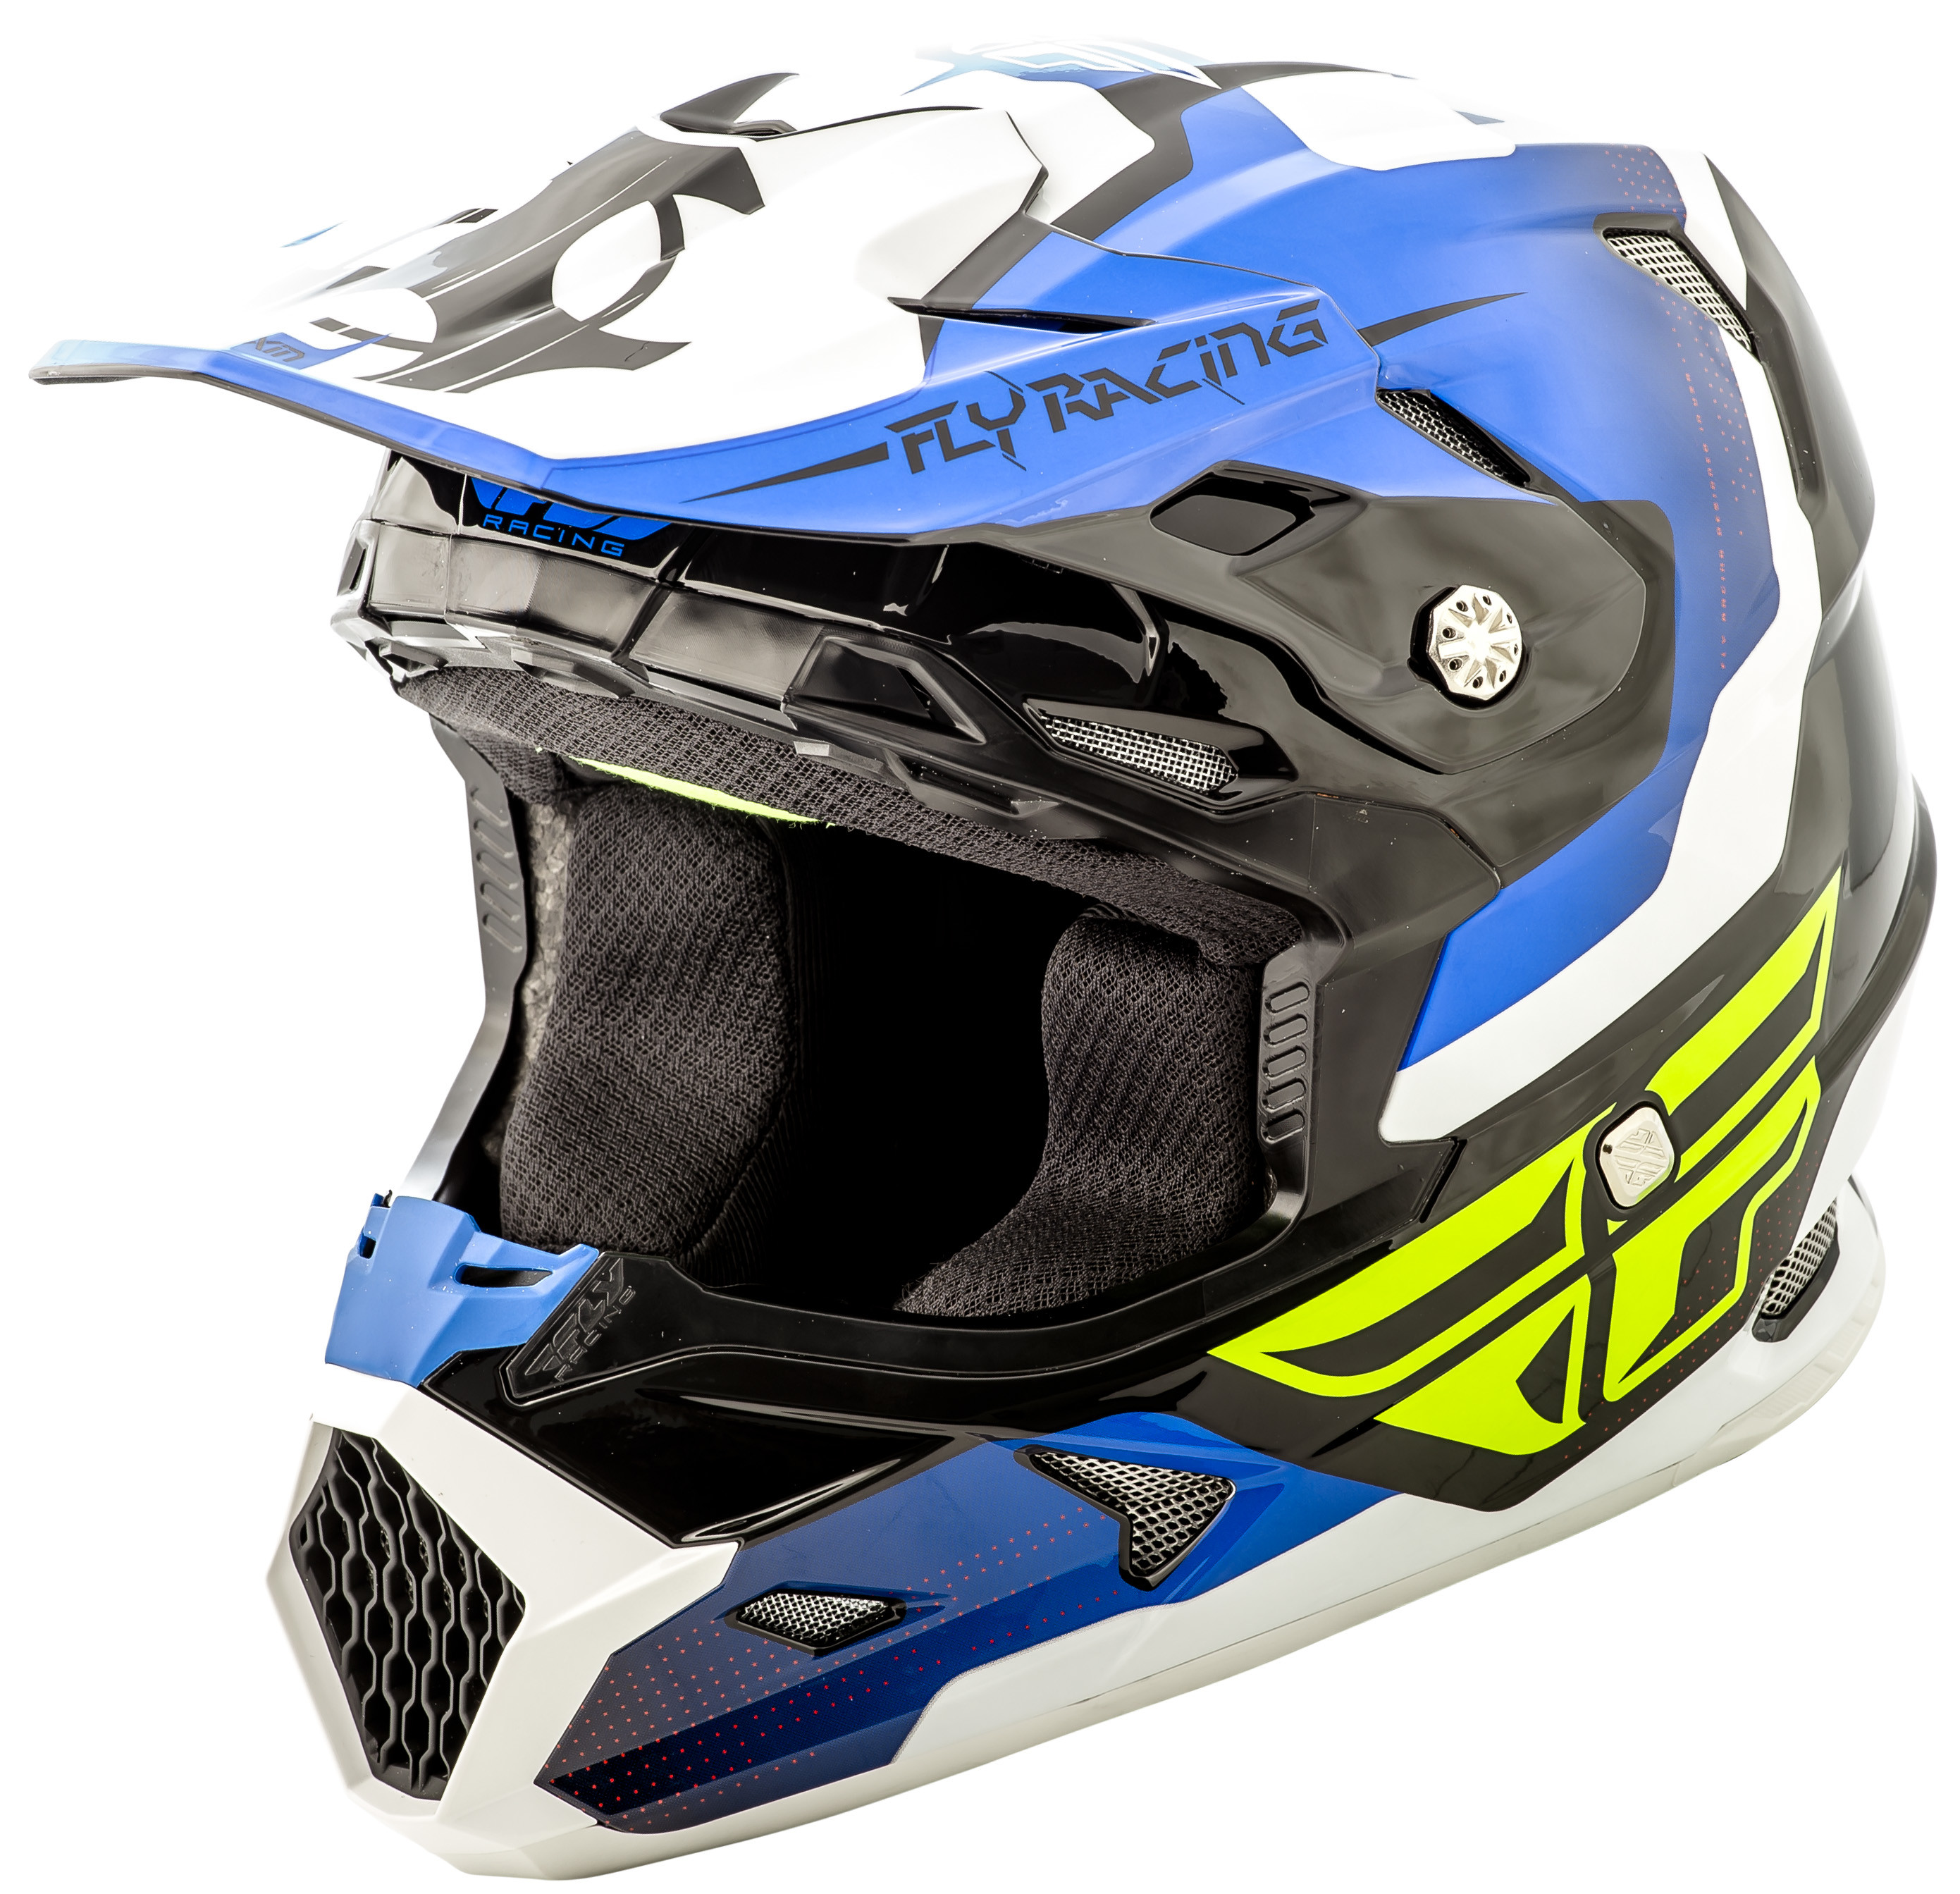 Toxin Original Helmet Blue/Black/White 2X